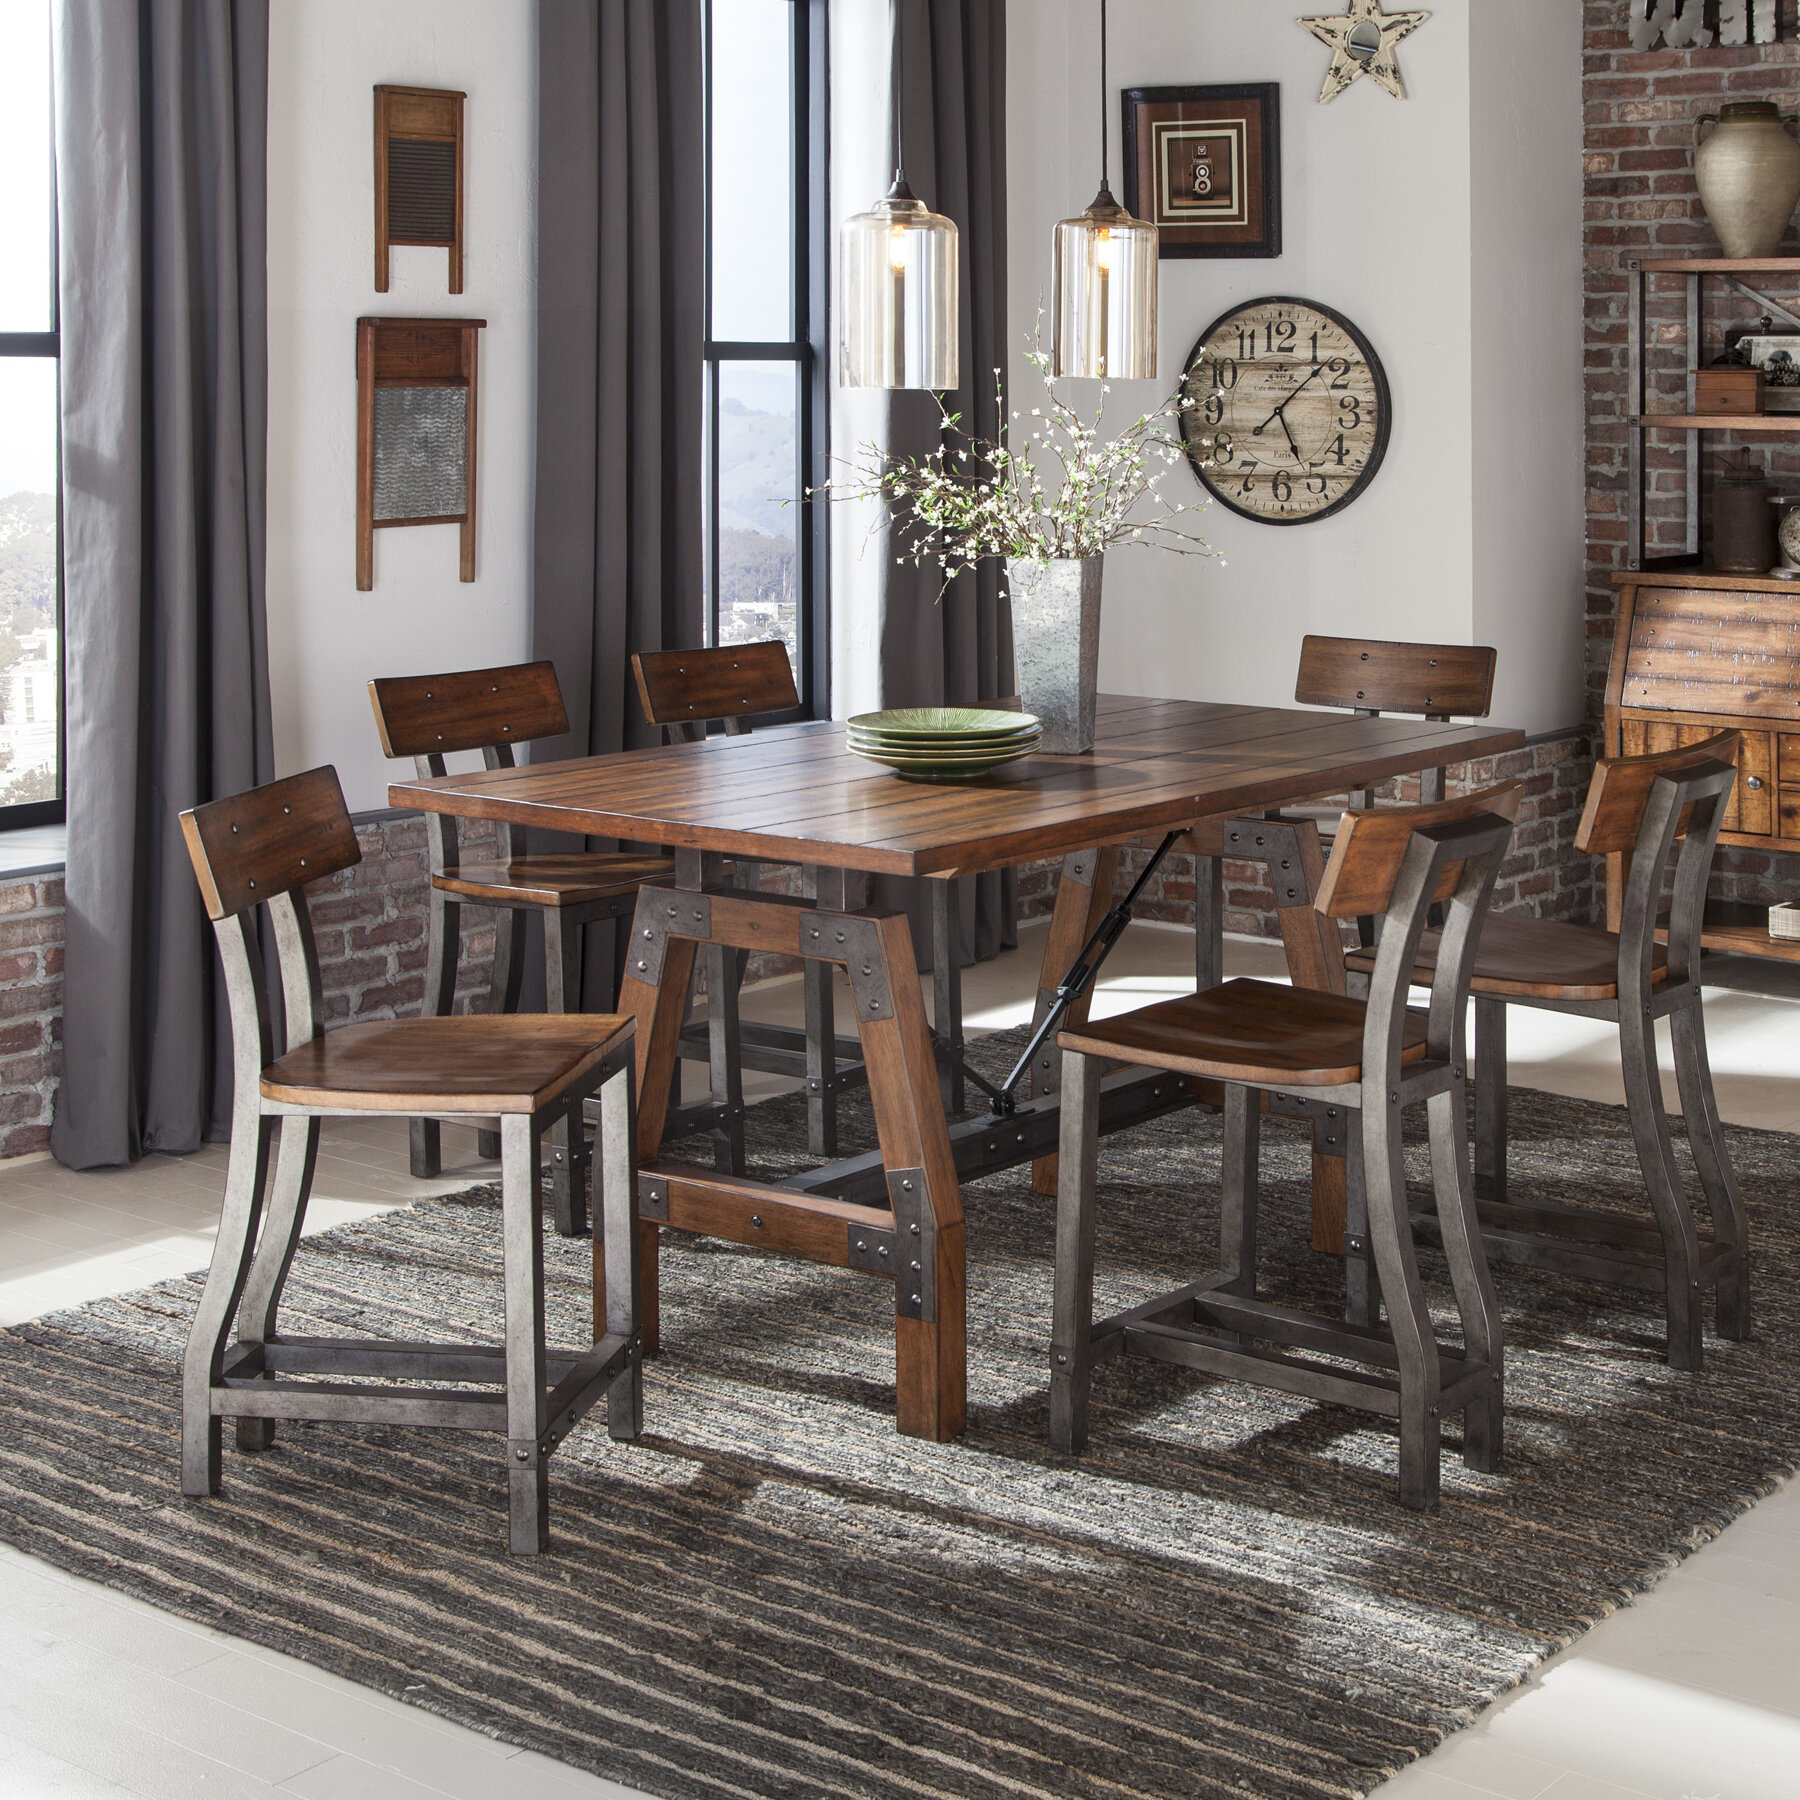 Tremendous Hawkinge 7 Piece Counter Height Dining Set Pdpeps Interior Chair Design Pdpepsorg